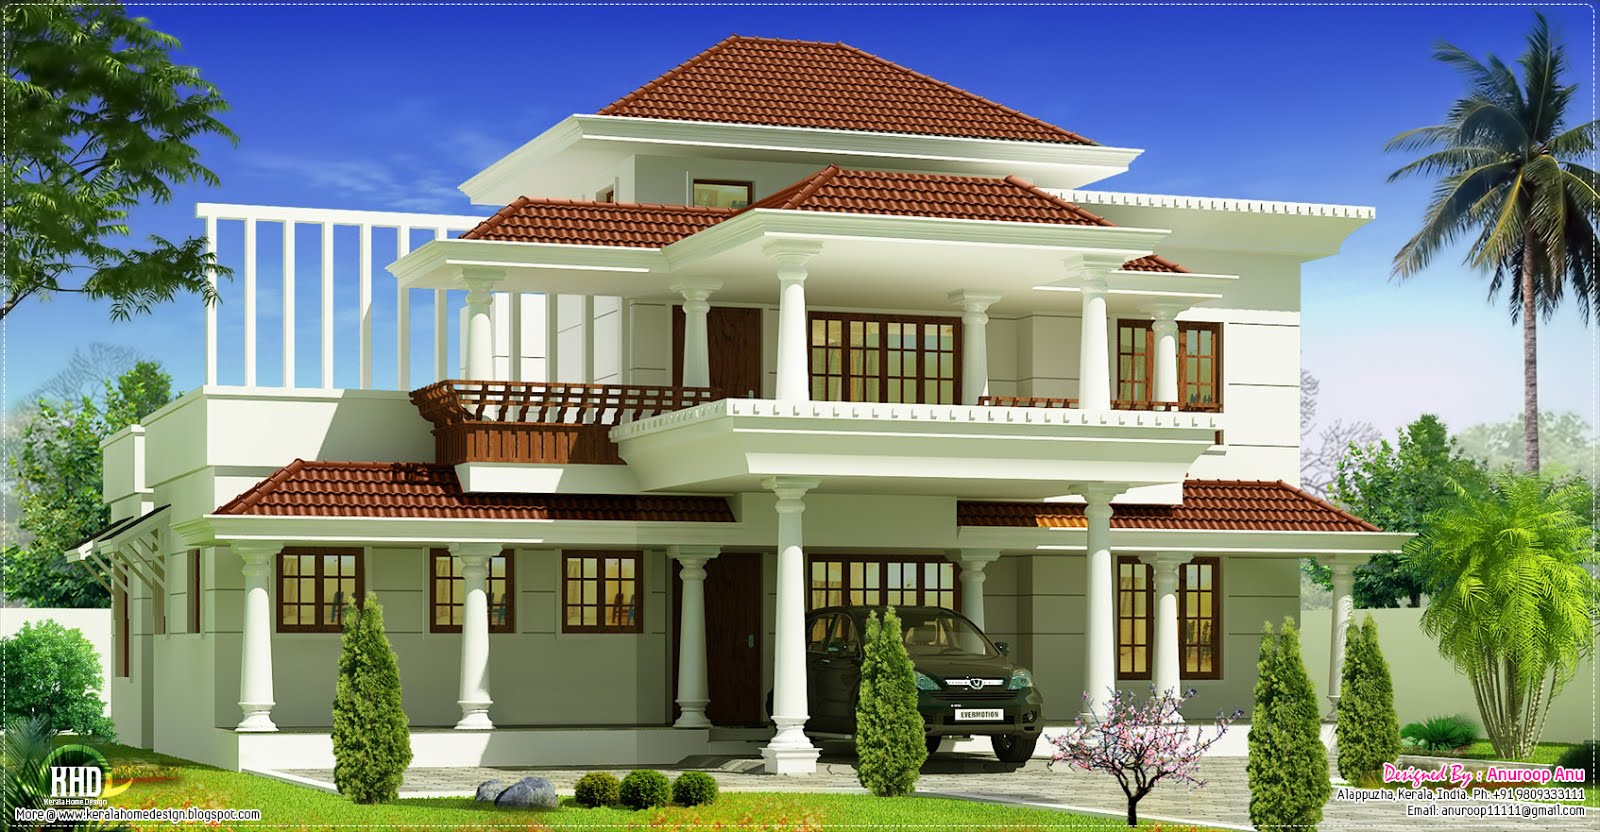 Kerala house models houses plans designs for Home models in kerala